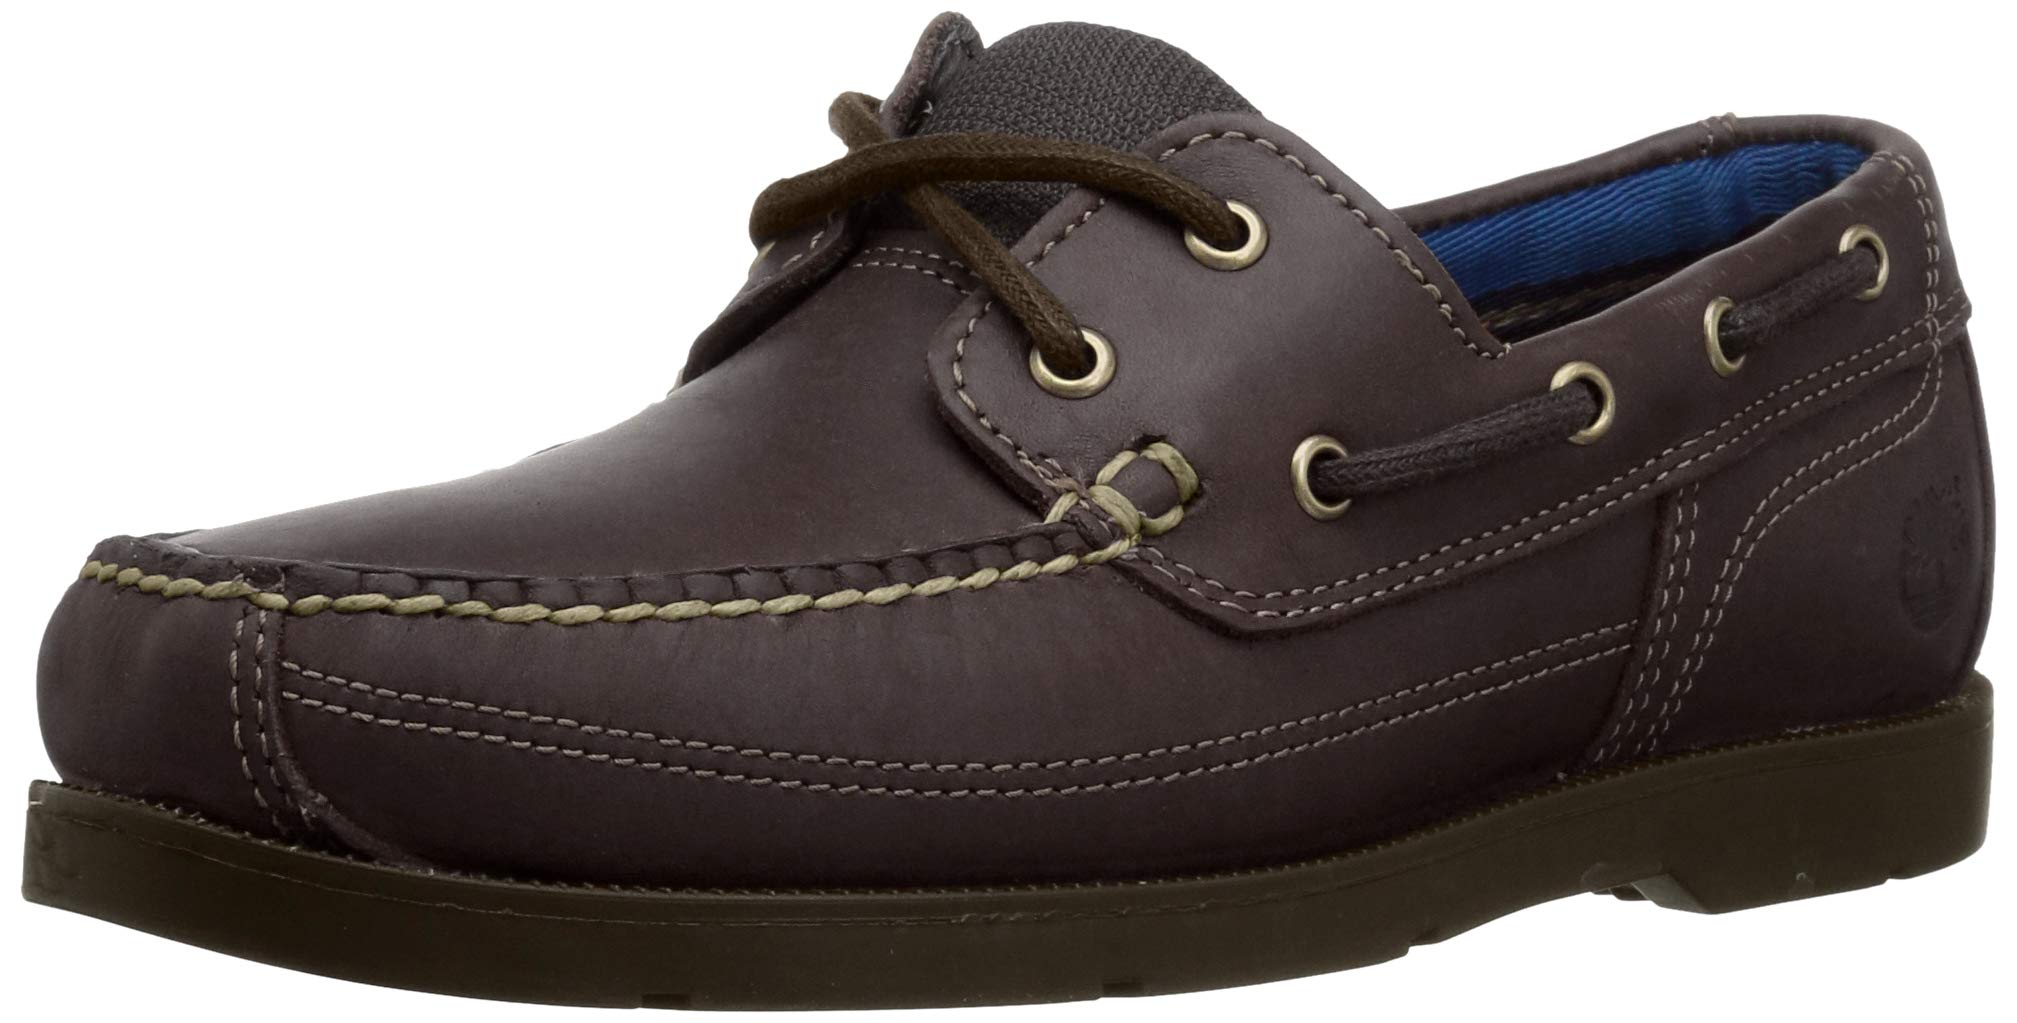 Timberland Mens Piper Cove Brown